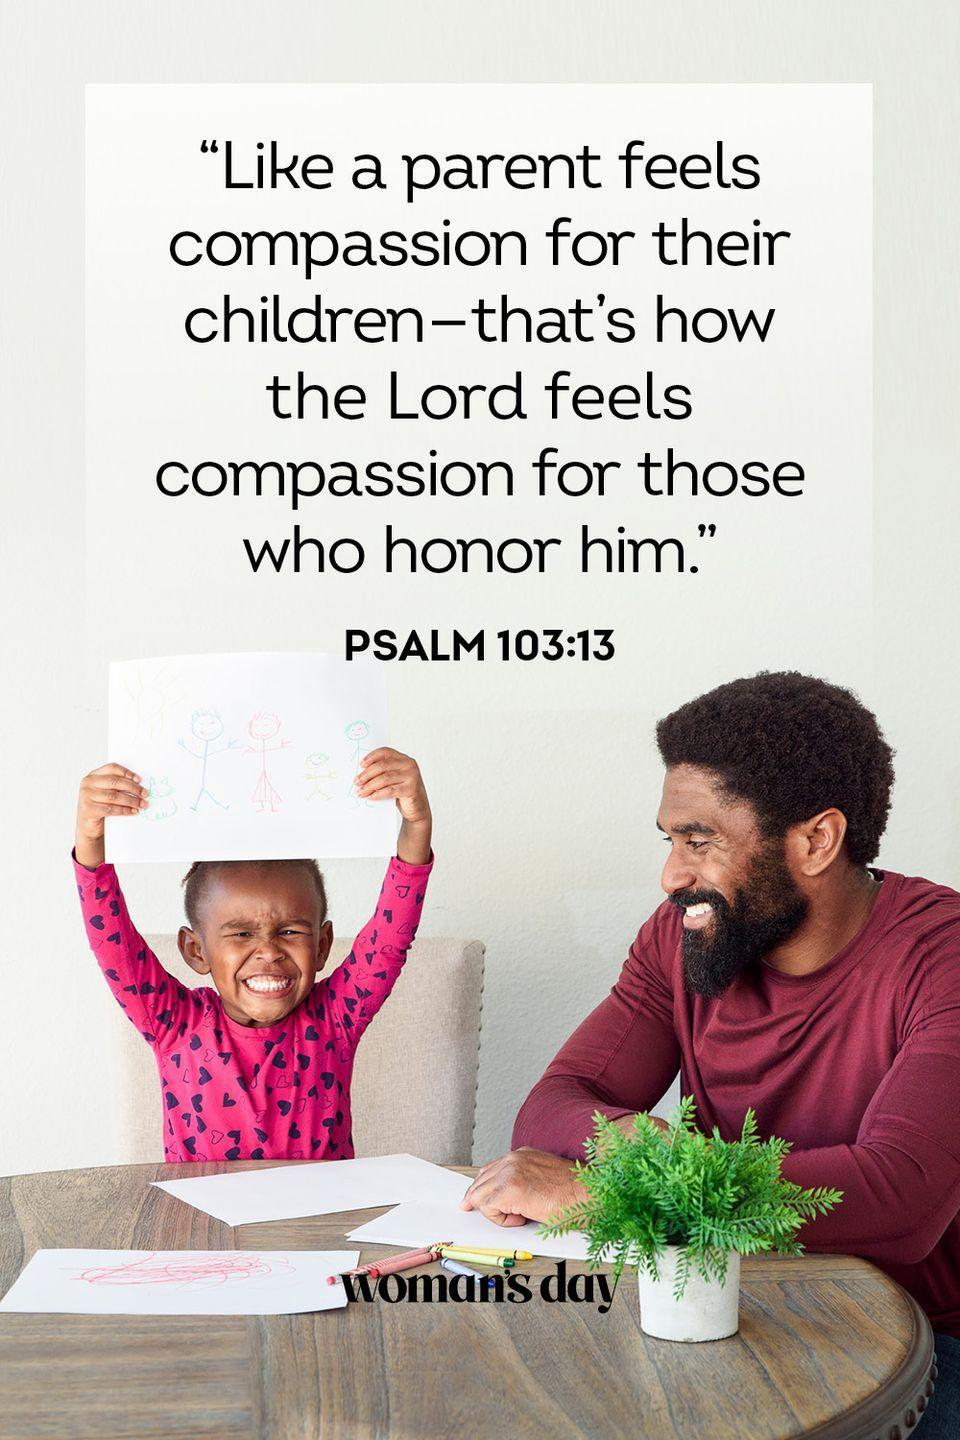 """<p>""""Then his father said, 'Son, you are always with me, and everything I have is yours.'""""</p><p><strong>The Good News:</strong> This applies to daughters, too. For many dads, what's his is yours. He would give you the world if he could.</p>"""